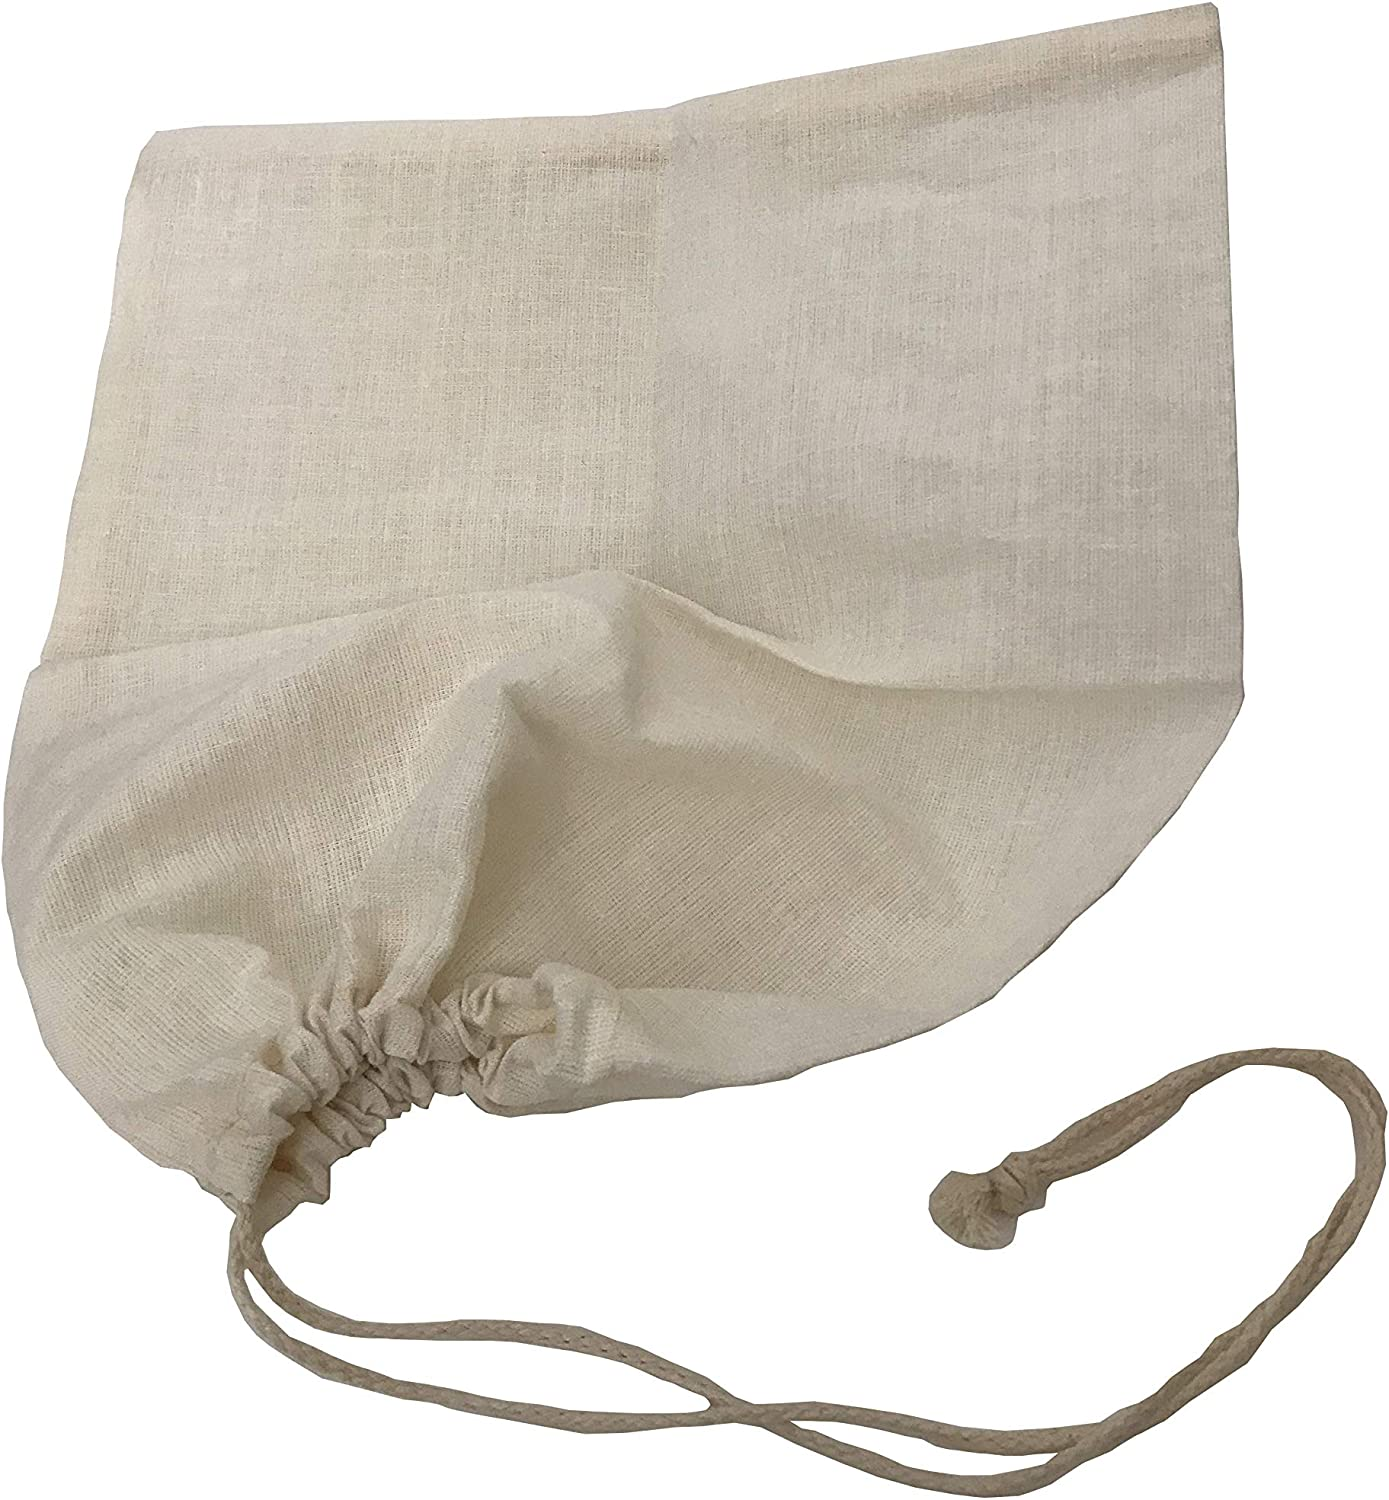 Spot on Products 100 Per Cent Natural Hemp Produce and Filter Bags. 2Pack Reusable Food Pouches with Sturdy Drawstrings. Best for Filtering Nut Milk, Juice, Storage of Fruit, Veg, Cheese 12 x 14 Inch